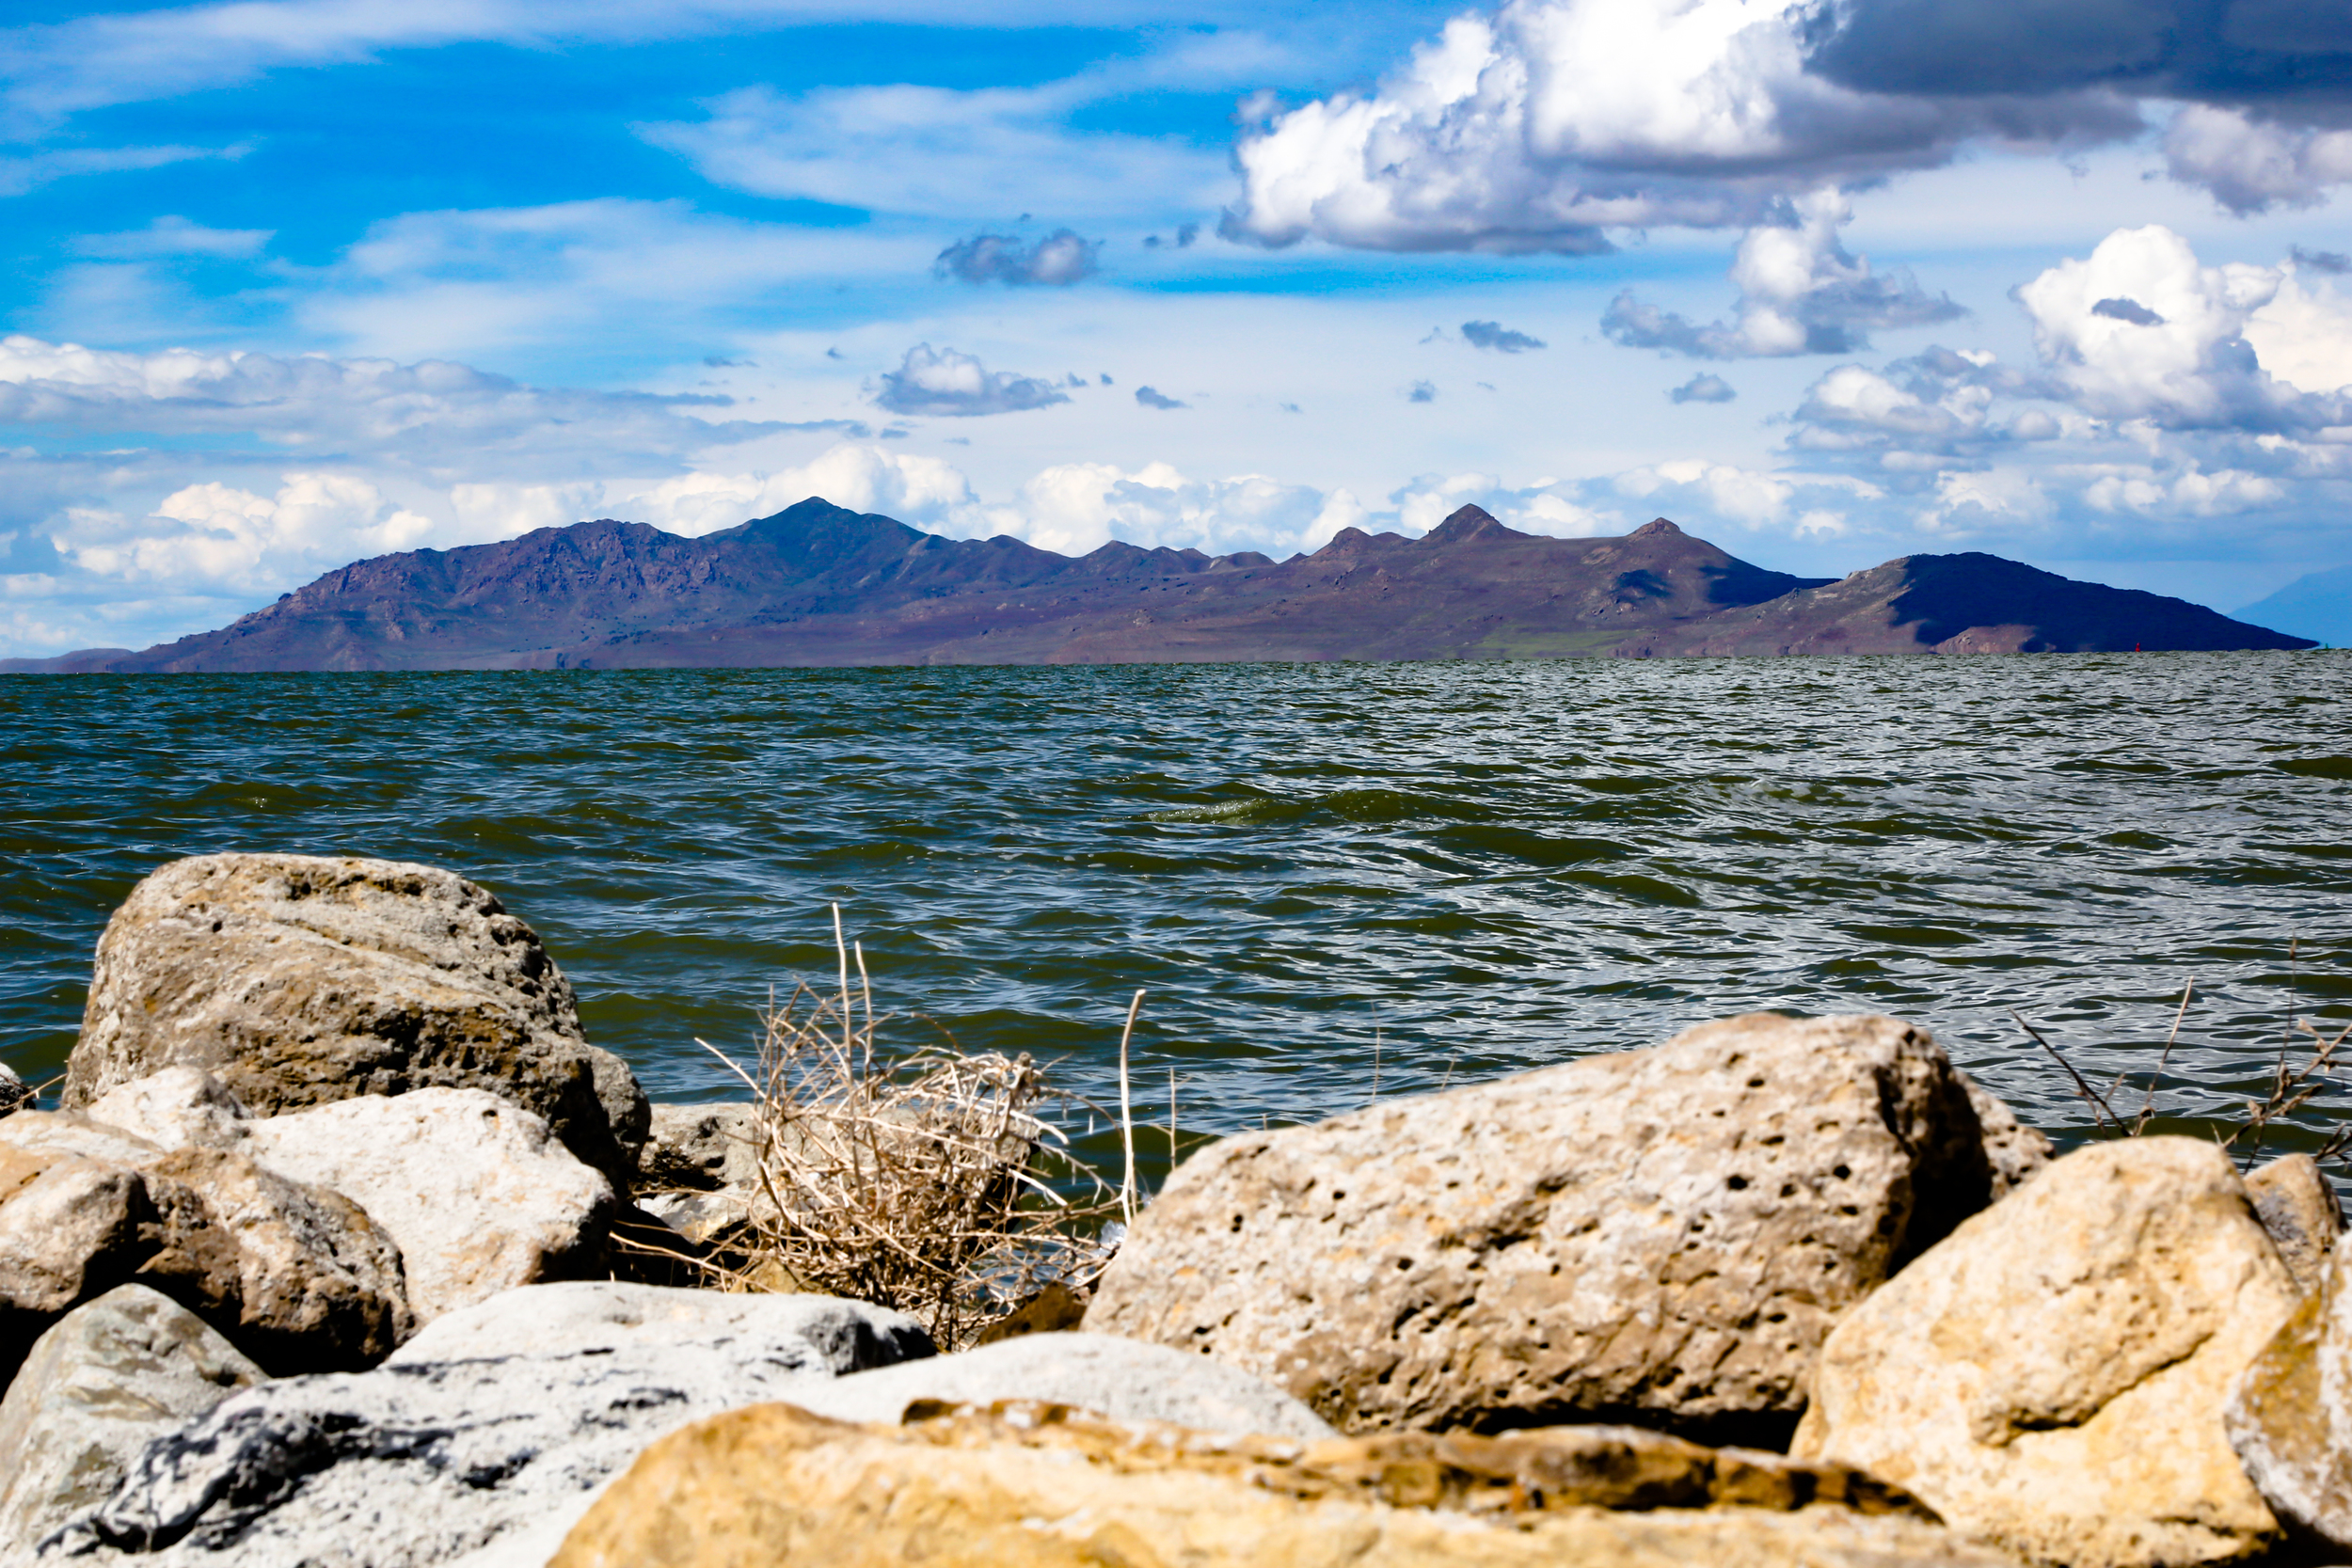 The Great Salt Lake is about 30 minutes from the city center.